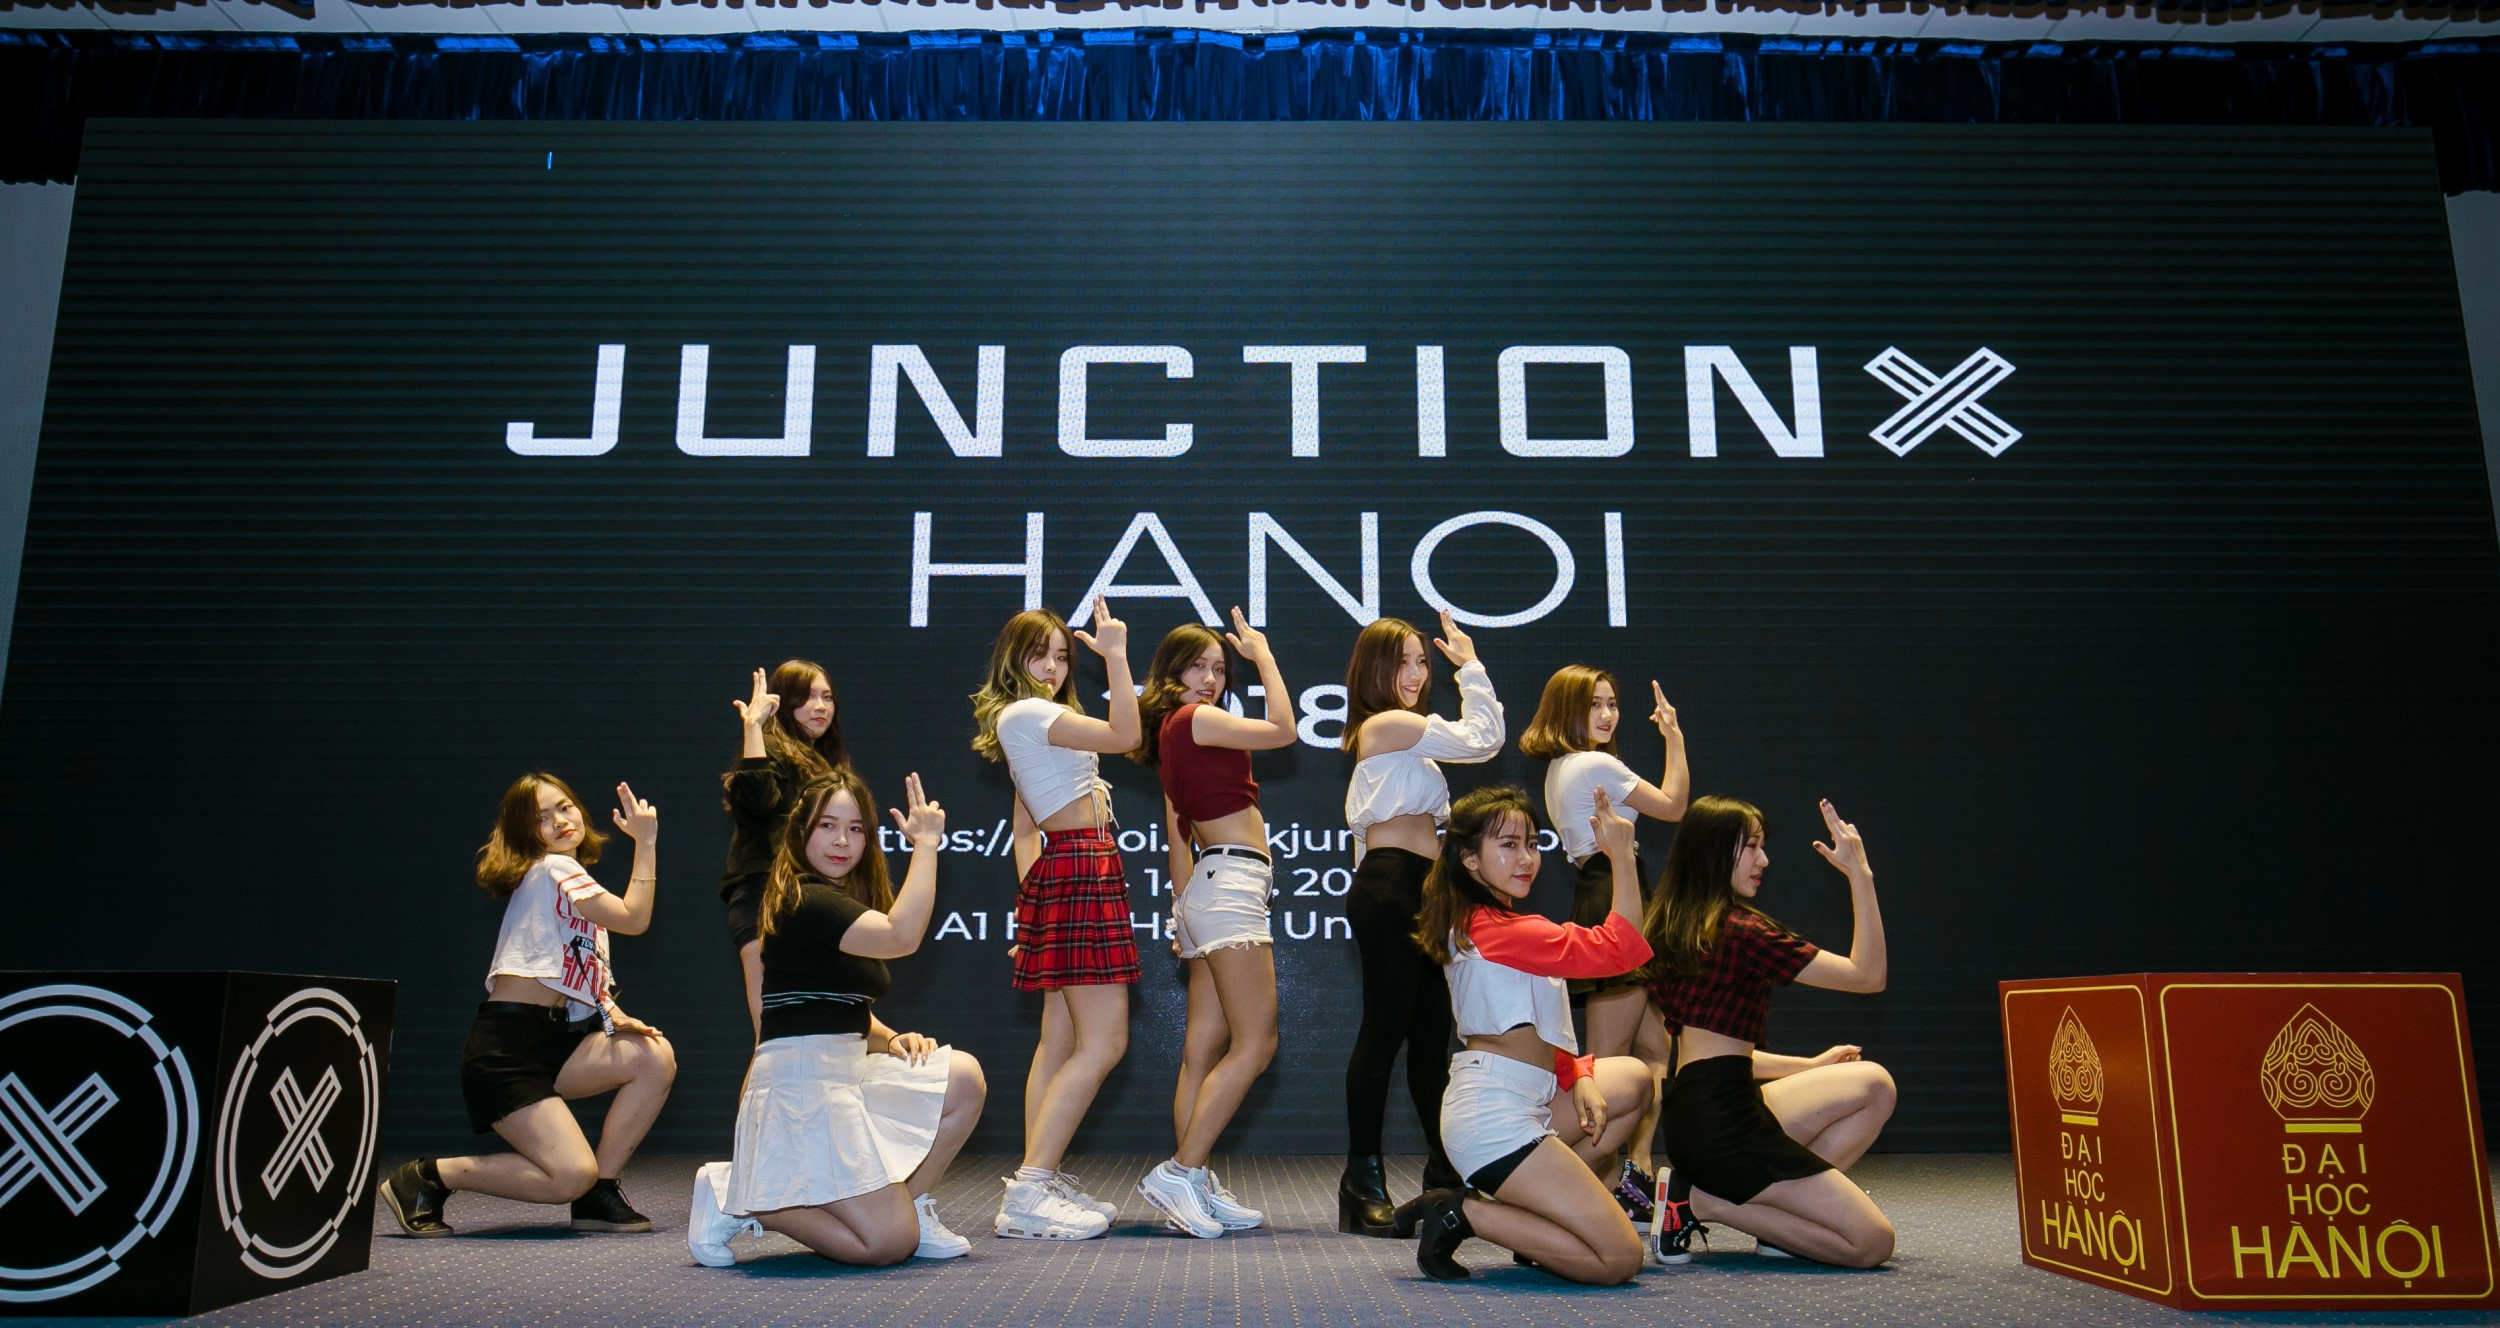 IBL and Infinito Partner to Inspire at JUNCTIONxHanoi